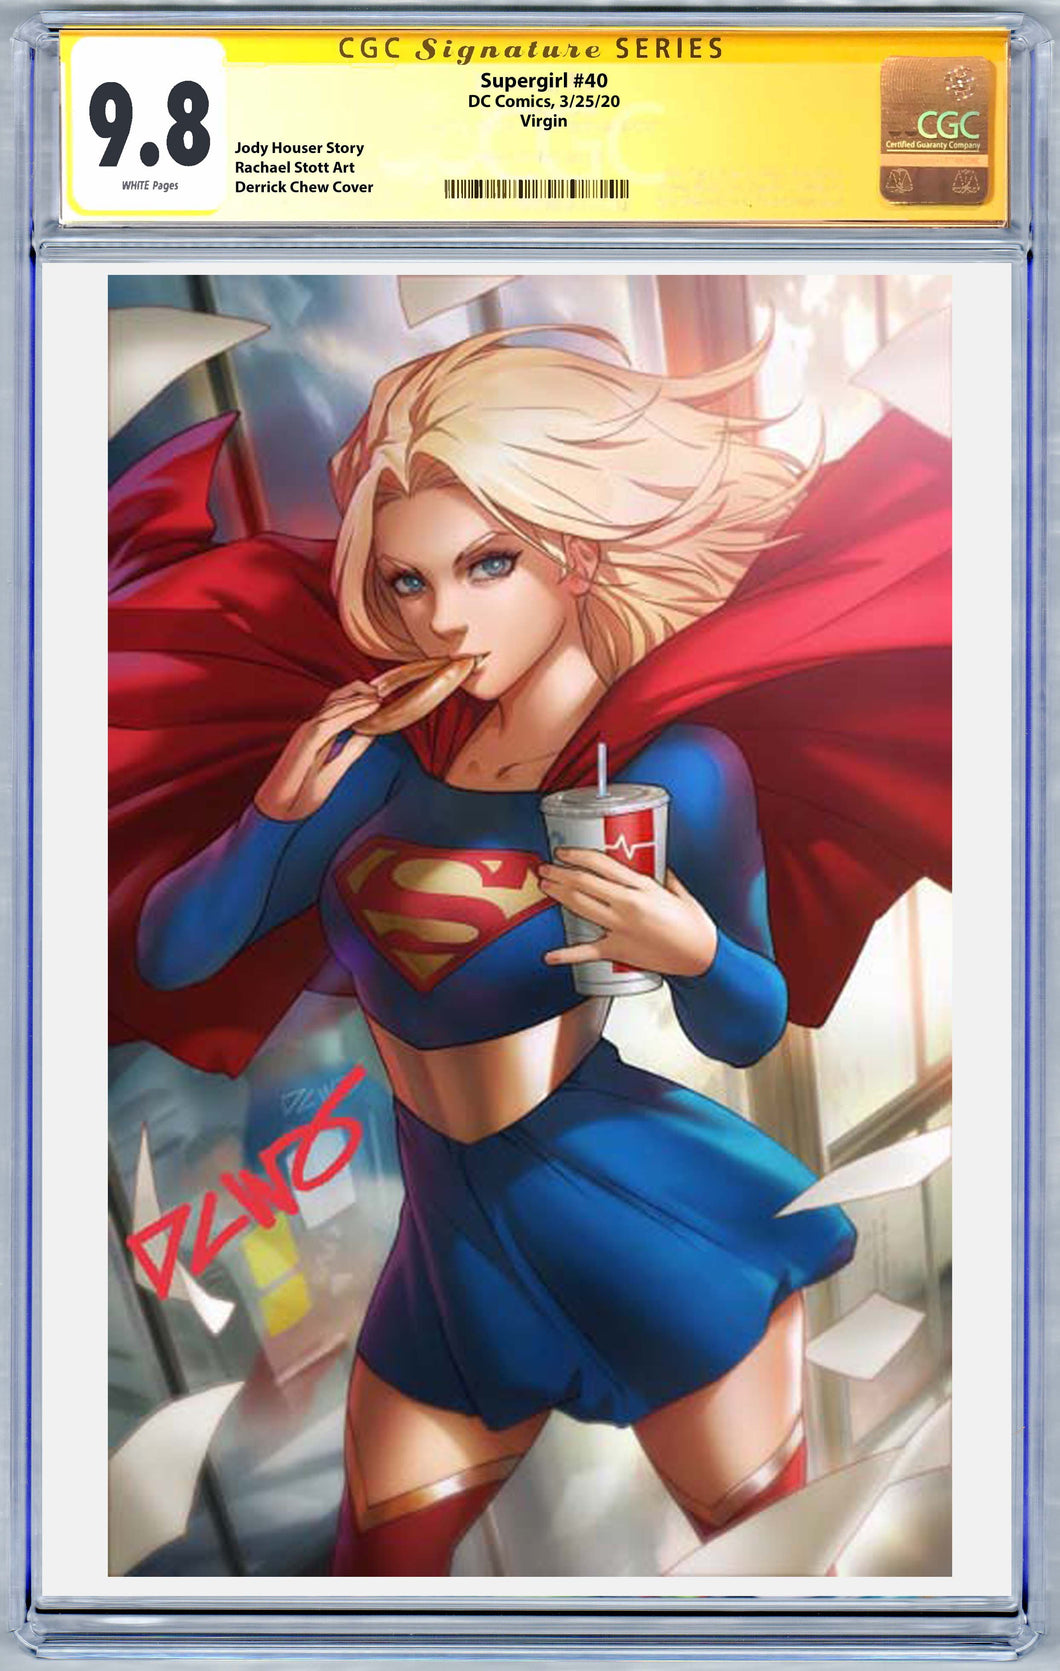 Supergirl #40 DCWJ Variant CGC 9.8 (3/25/20 Release)